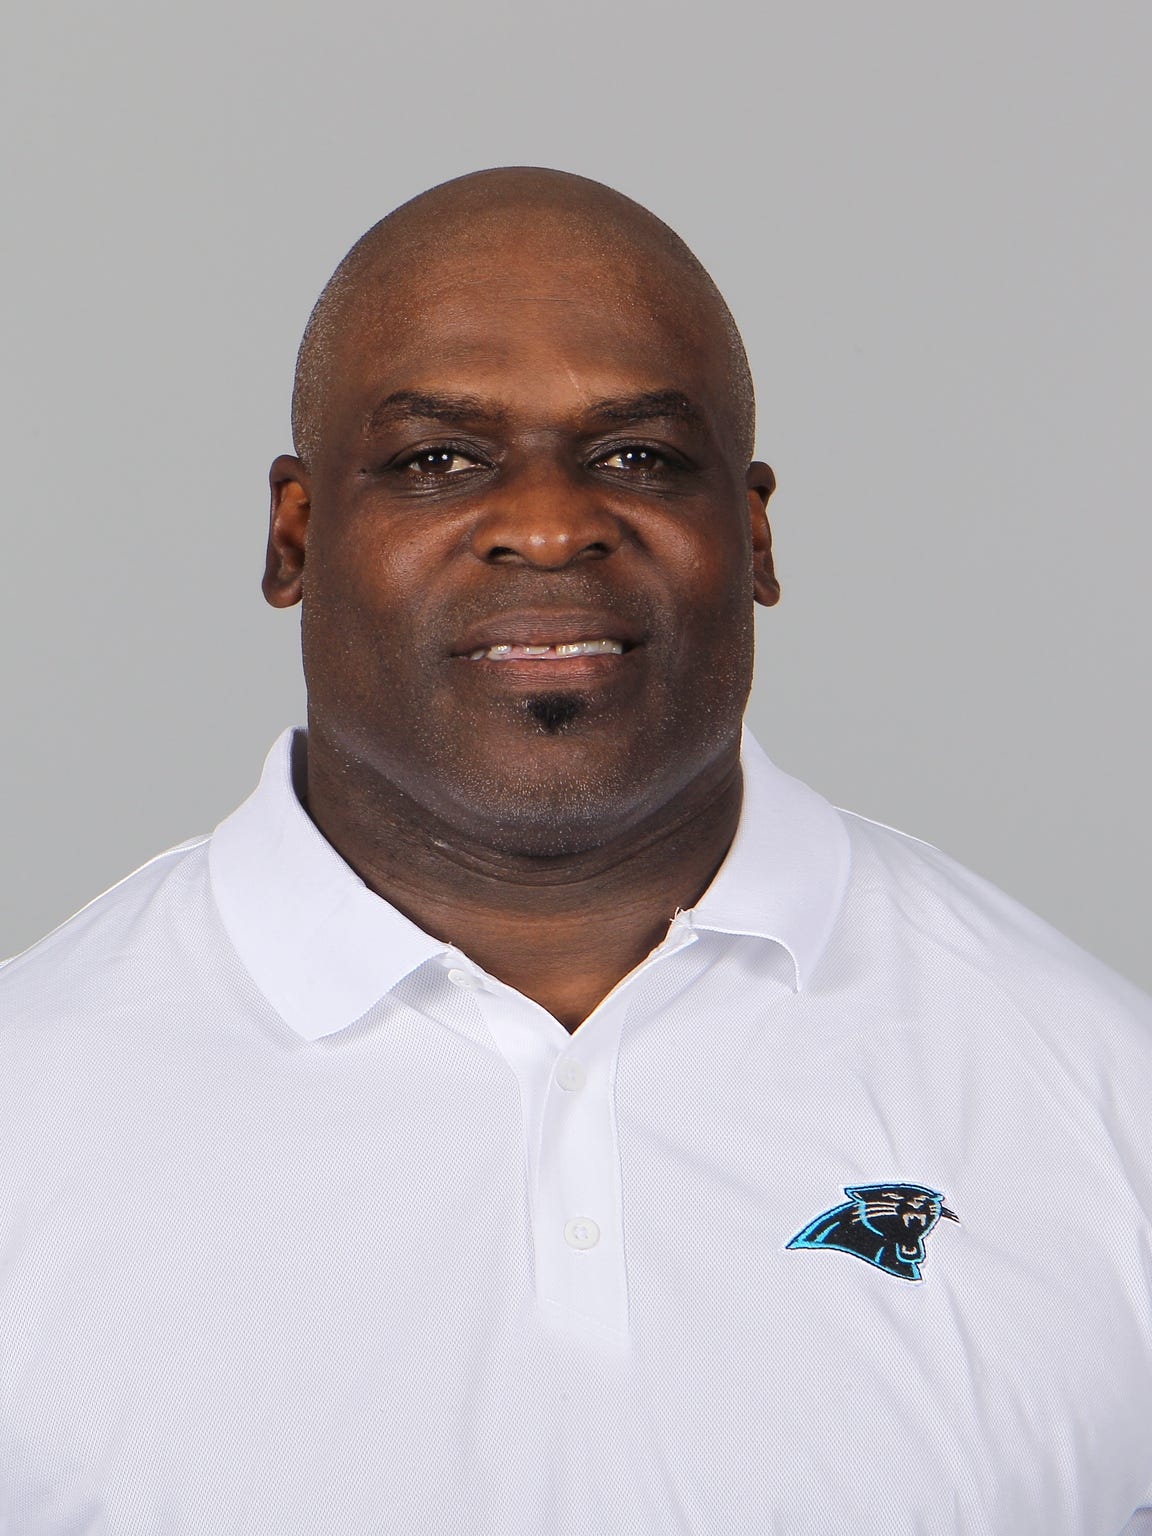 Richard Rodgers Sr. is a defensive assistant with the Carolina Panthers.